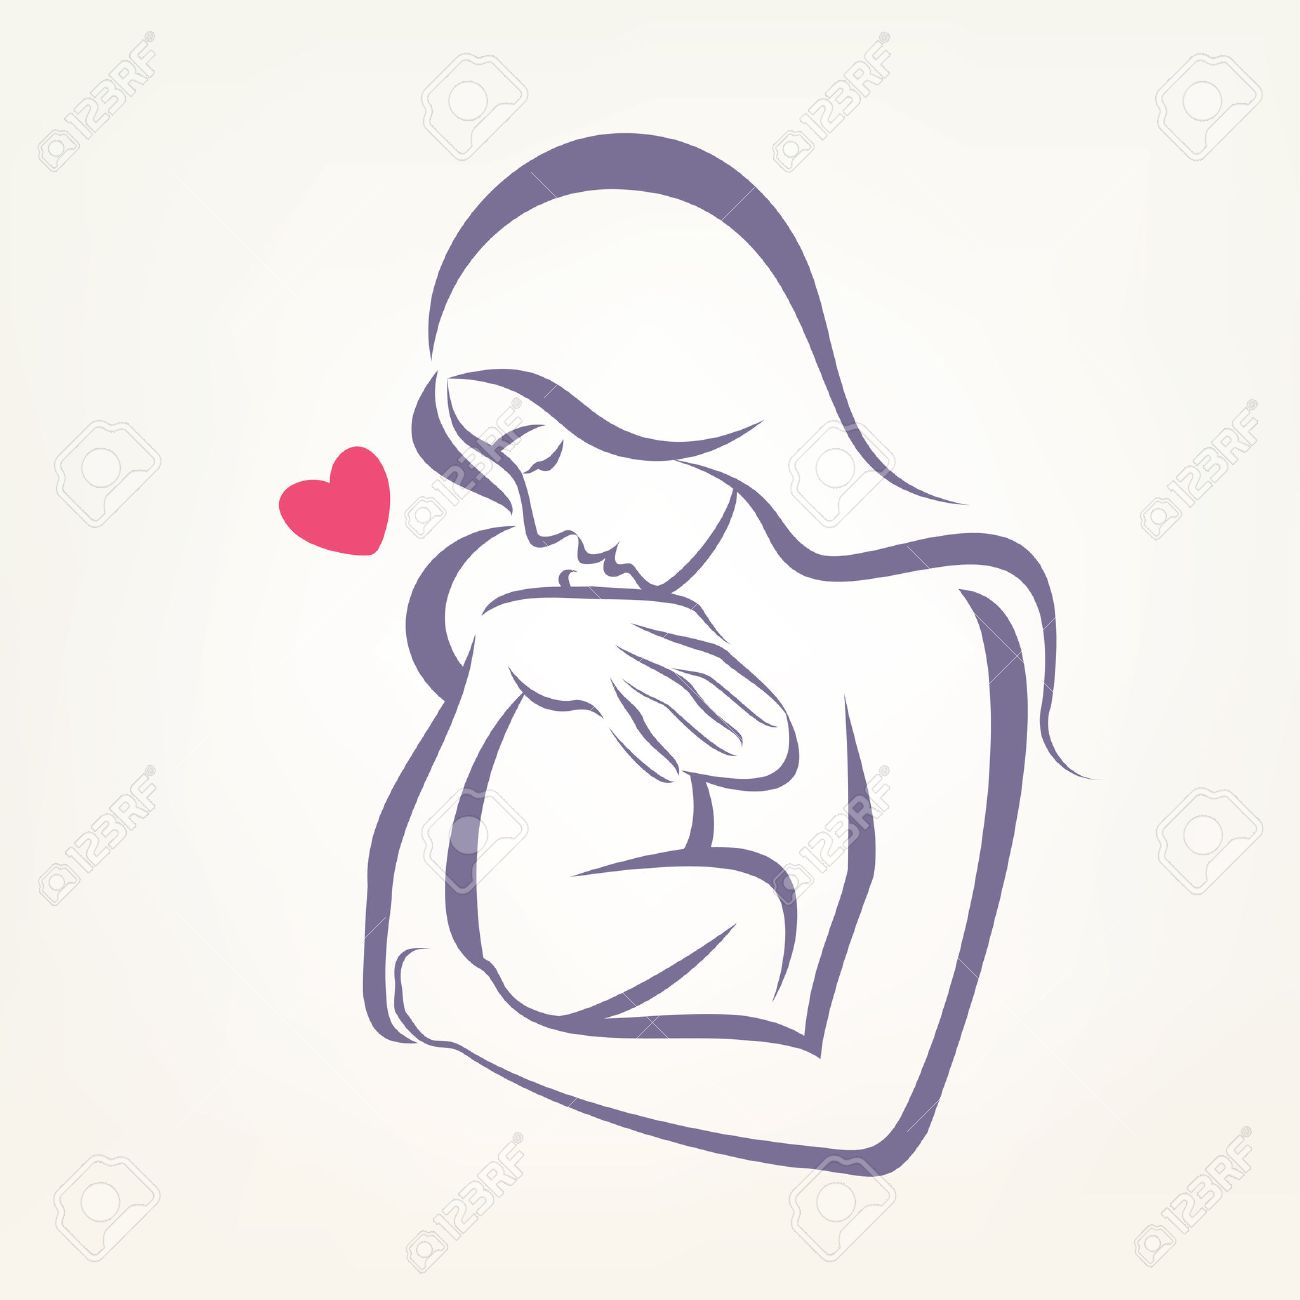 mom and baby stylized symbol, outlined sketch - 38207516